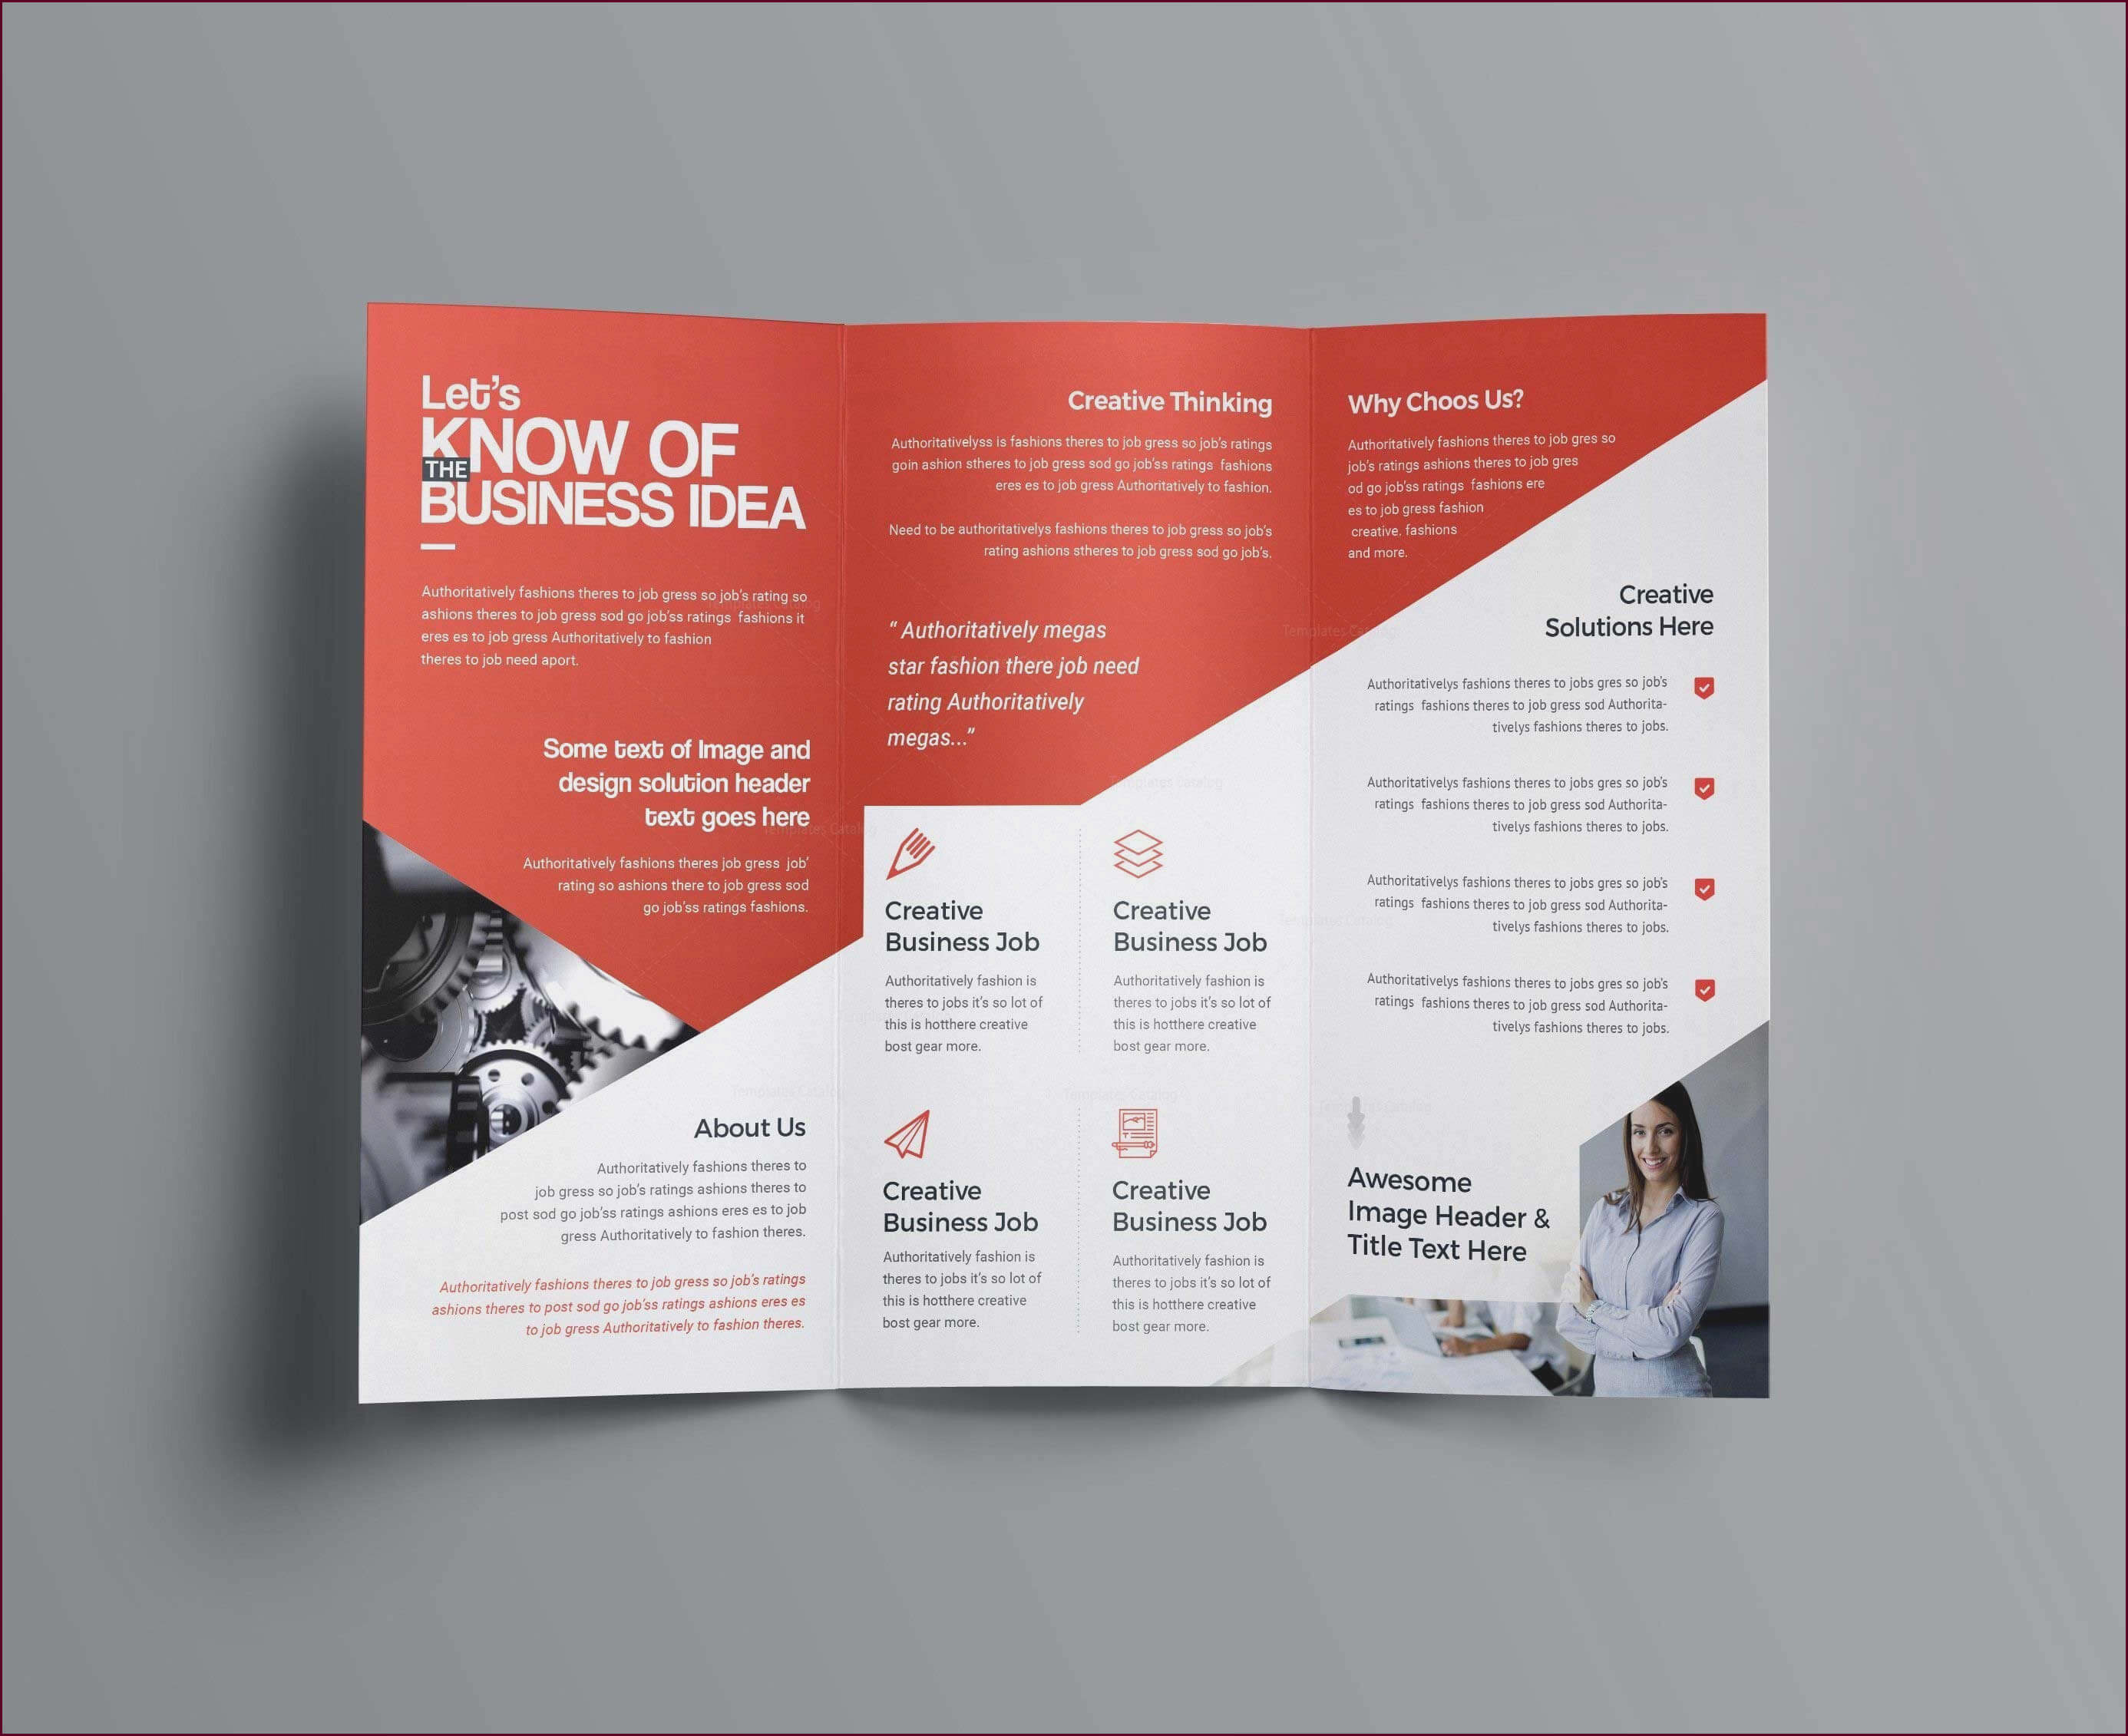 Free Brochure Templates Illustrator File | Infiscale Designs with regard to Illustrator Brochure Templates Free Download